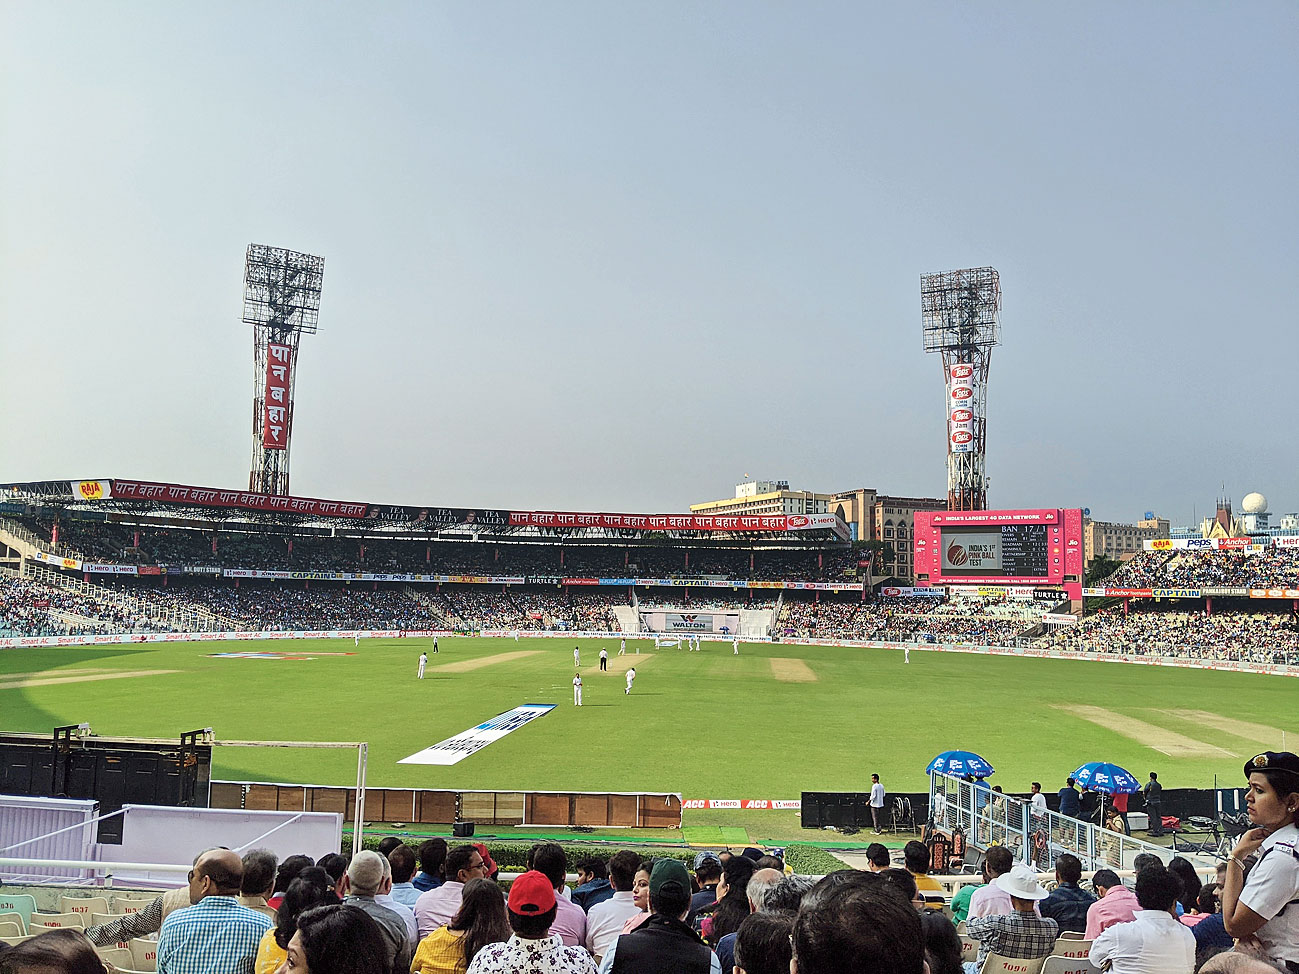 Picture of the Eden match taken by Nick Low on Day 1